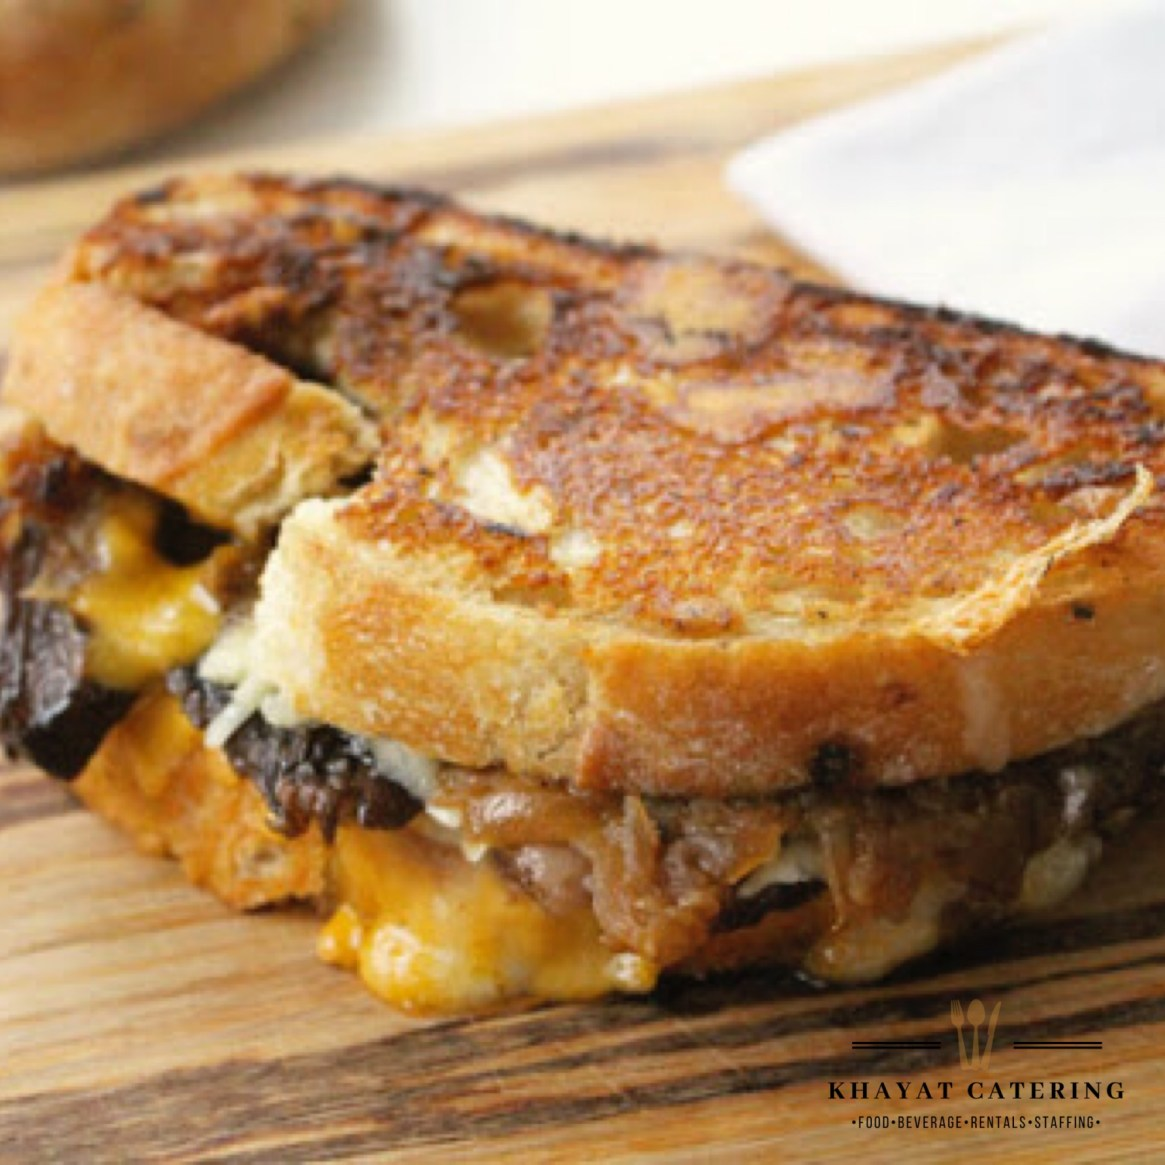 Khayat Catering short rib grilled cheese